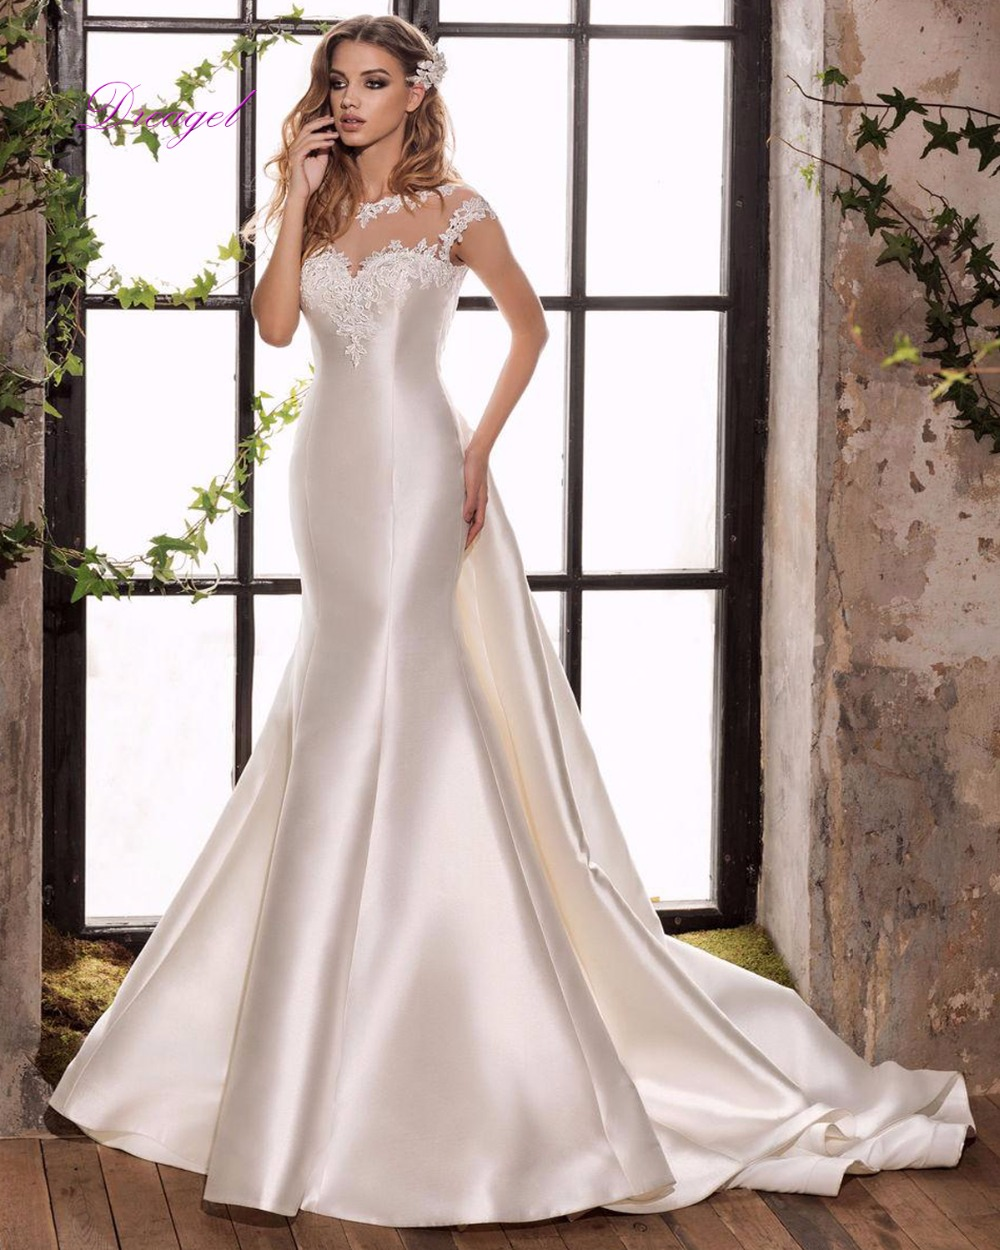 Detachable Trains For Wedding Gowns: Popular Detachable Wedding Dress Train-Buy Cheap